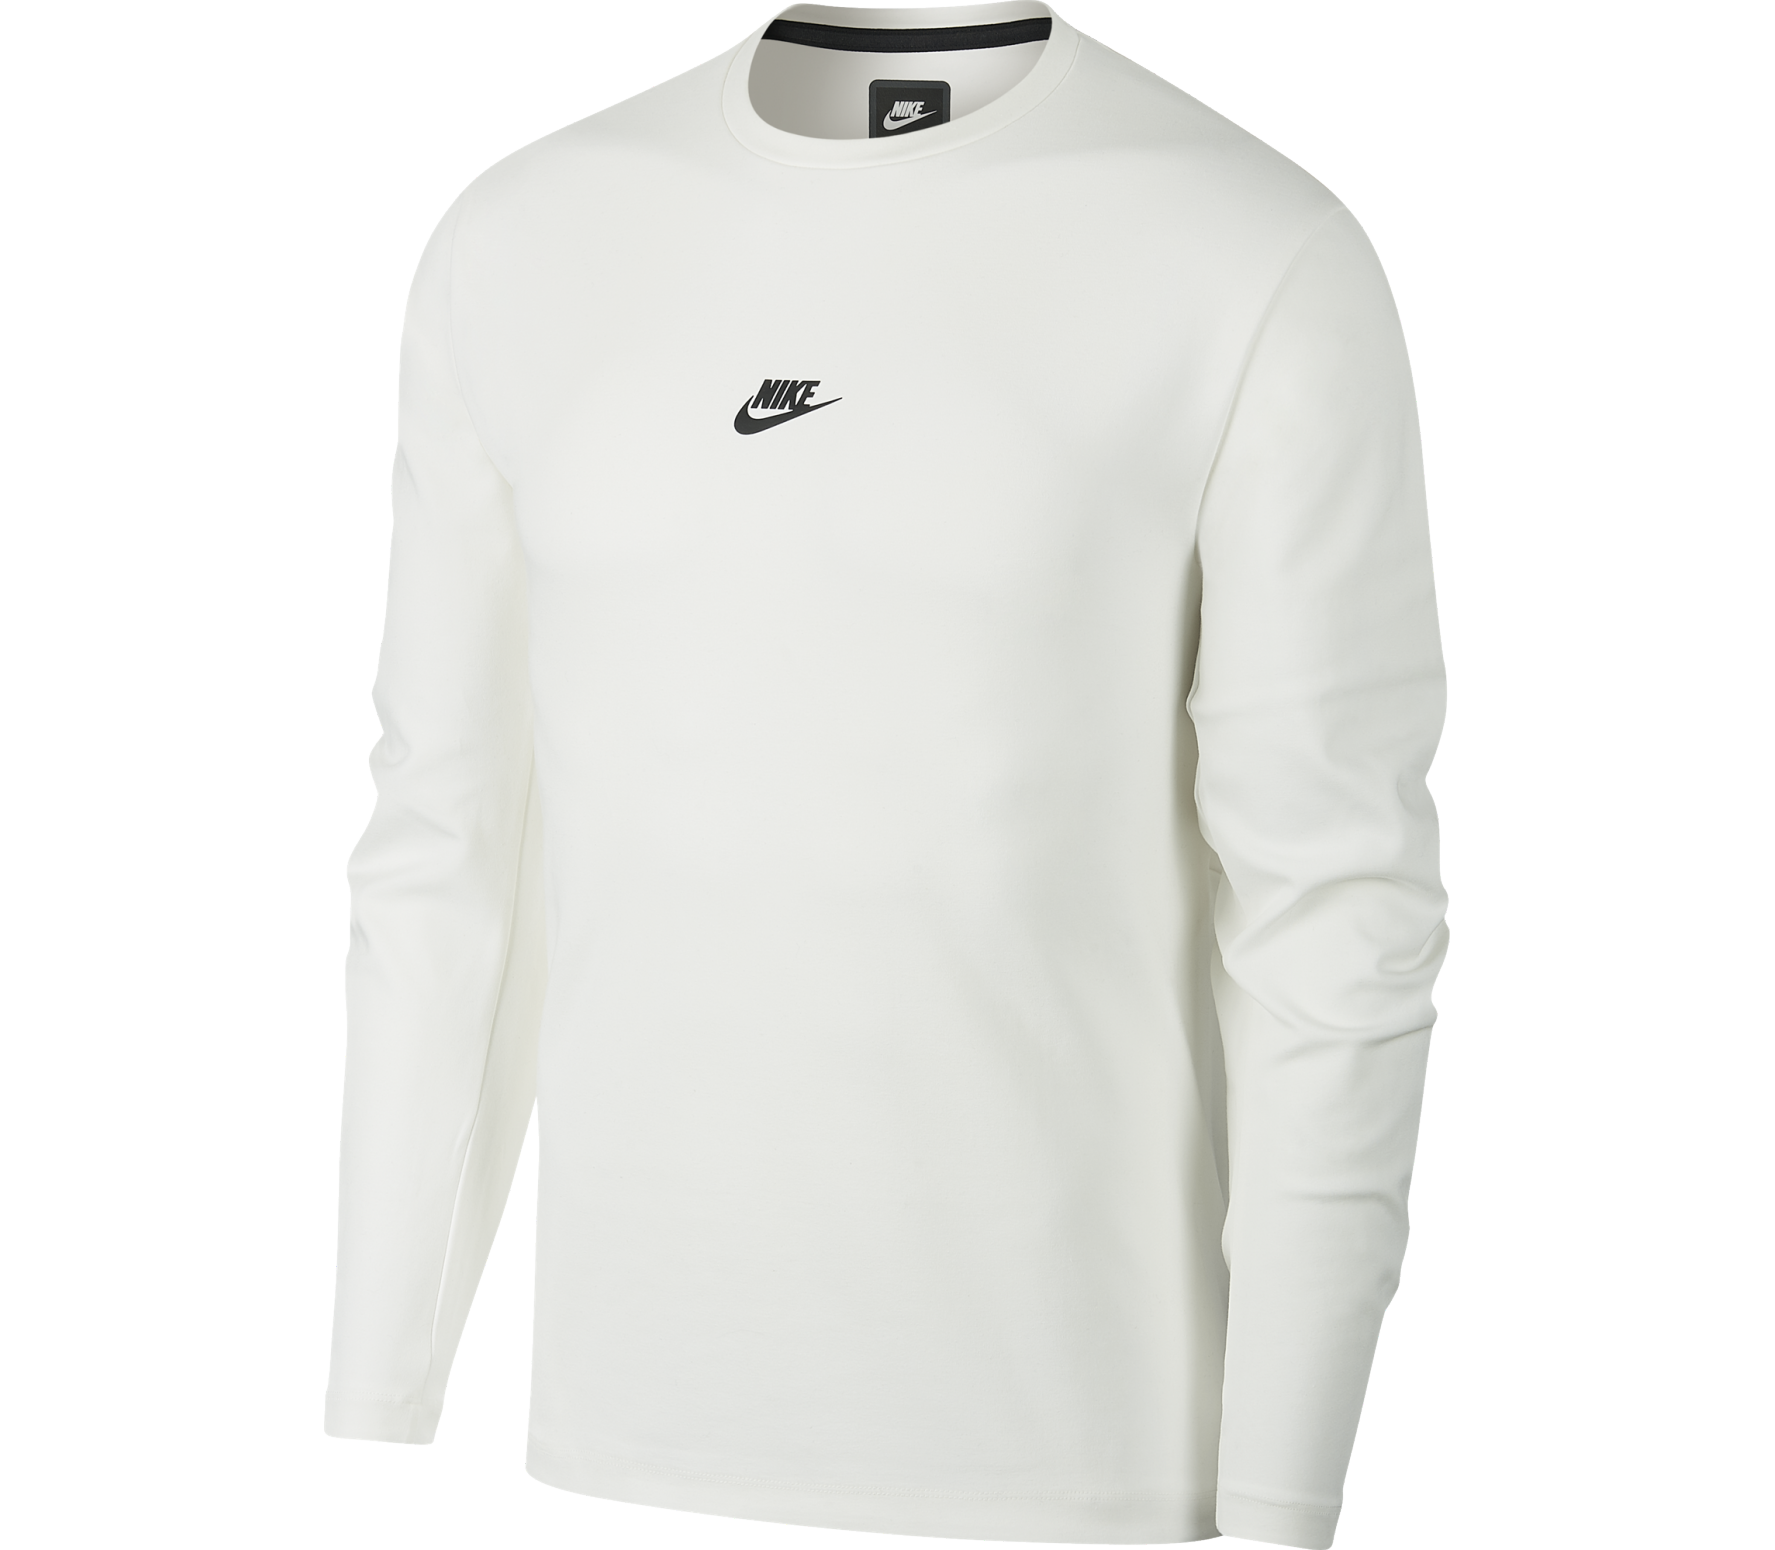 274936ee316d Nike Sportswear Tech Pack men s long-sleeved top (white) online ...